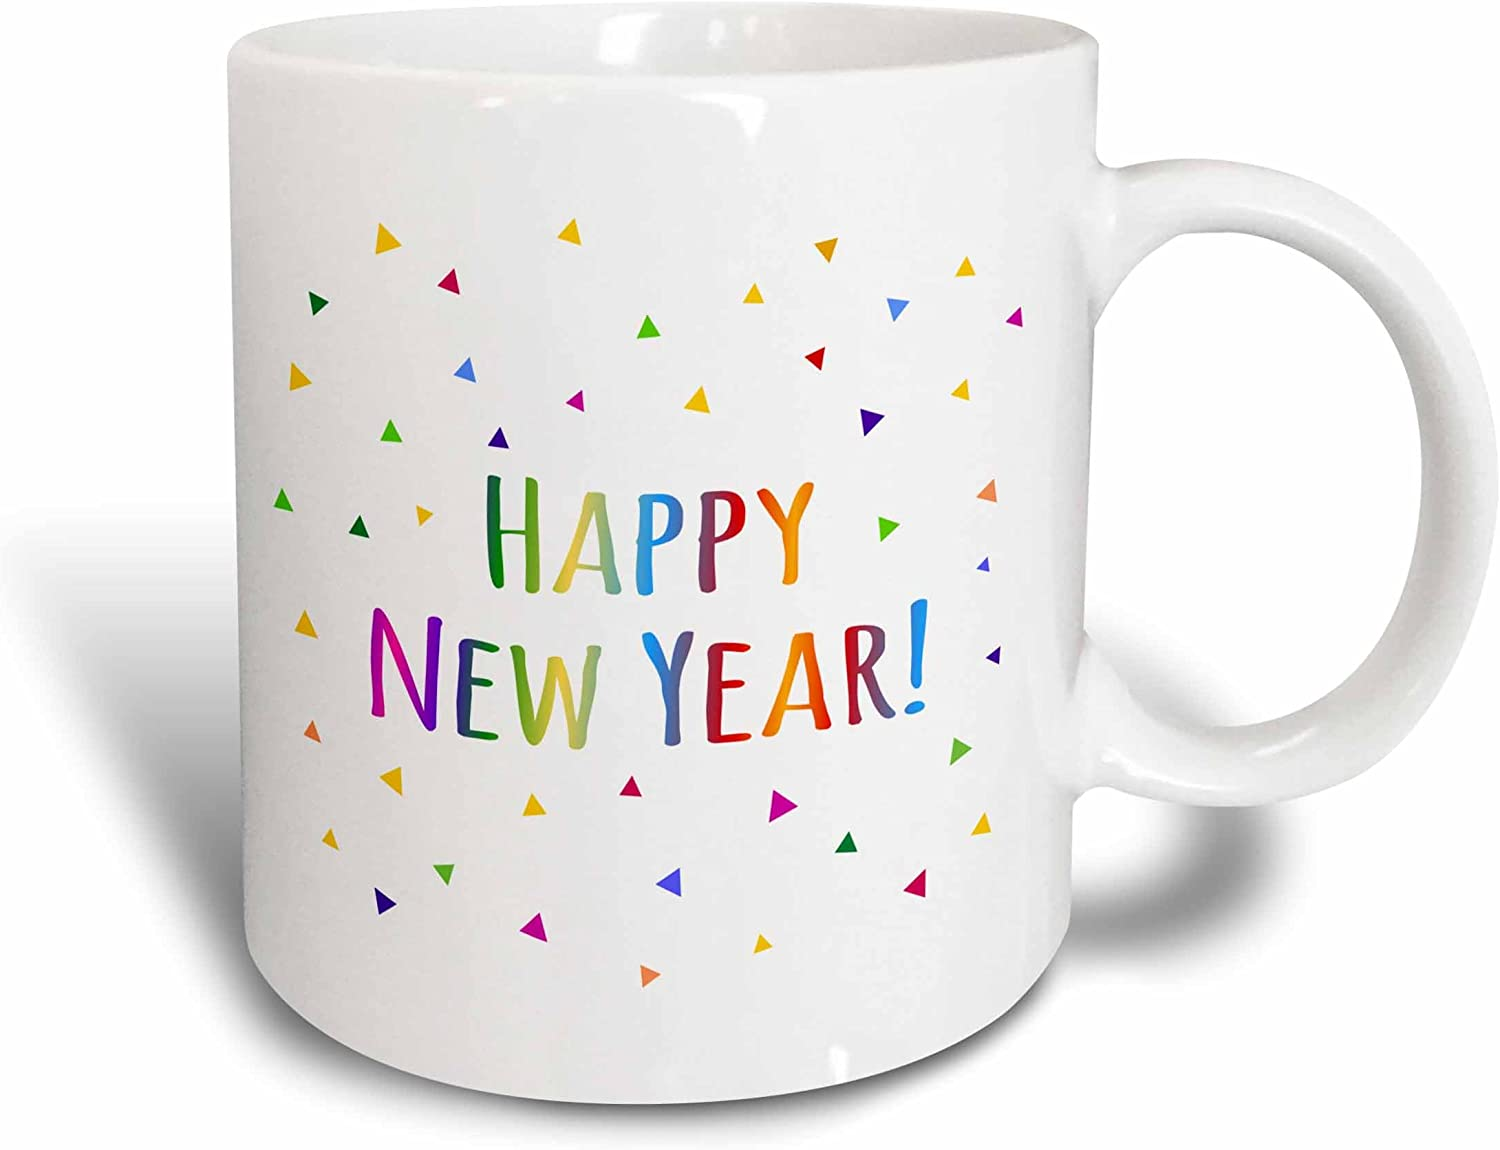 3dRose Shana Tova - Rosh Hashanah Greeting For A Happy Jewish New Year Mug, 11 oz, White